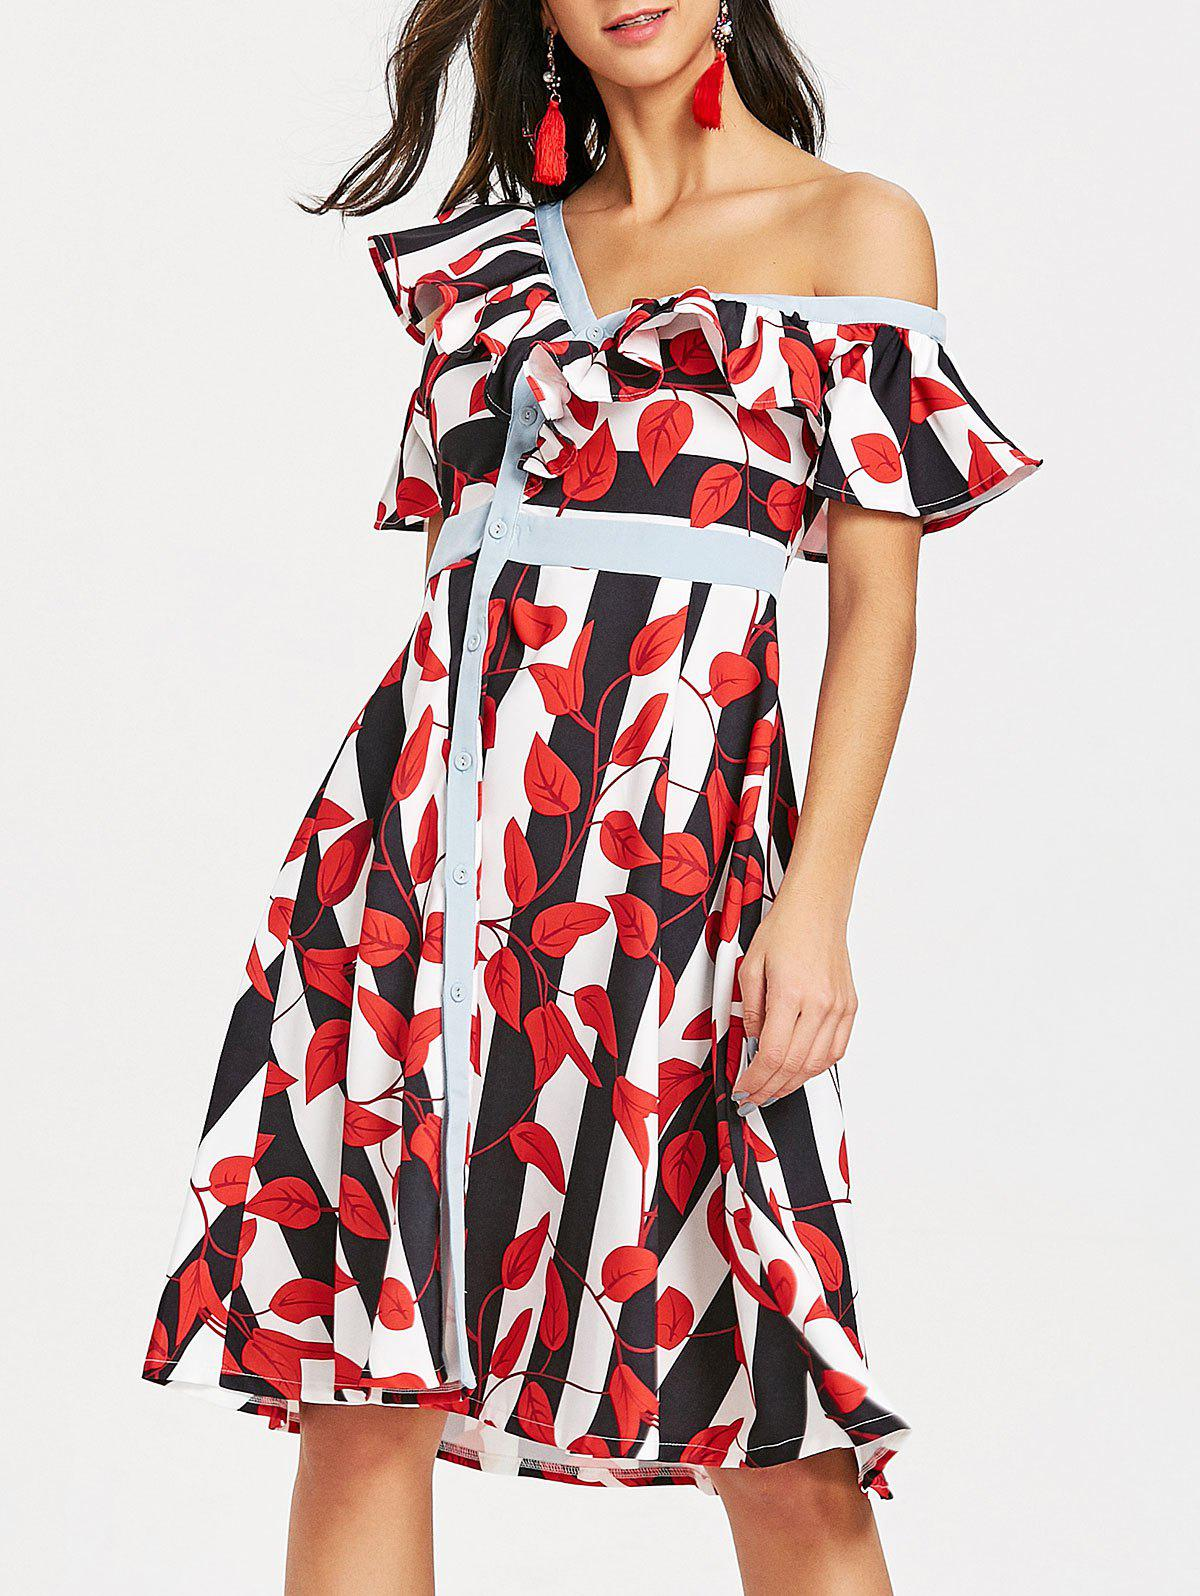 Skew Neck Striped Leaves Print Dress - RED S